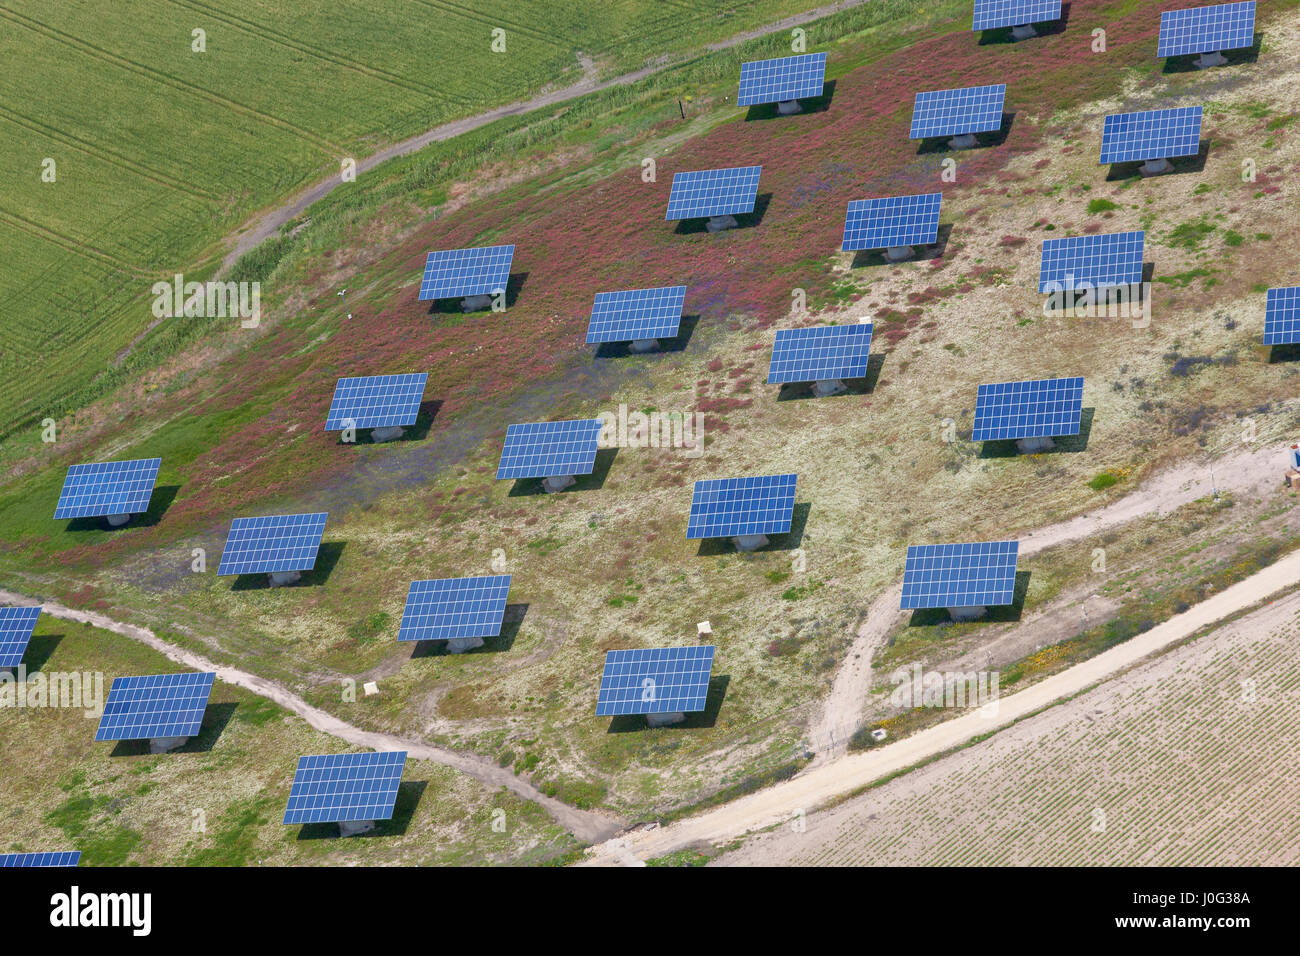 Solar Panels Aerial Stock Photos Amp Solar Panels Aerial